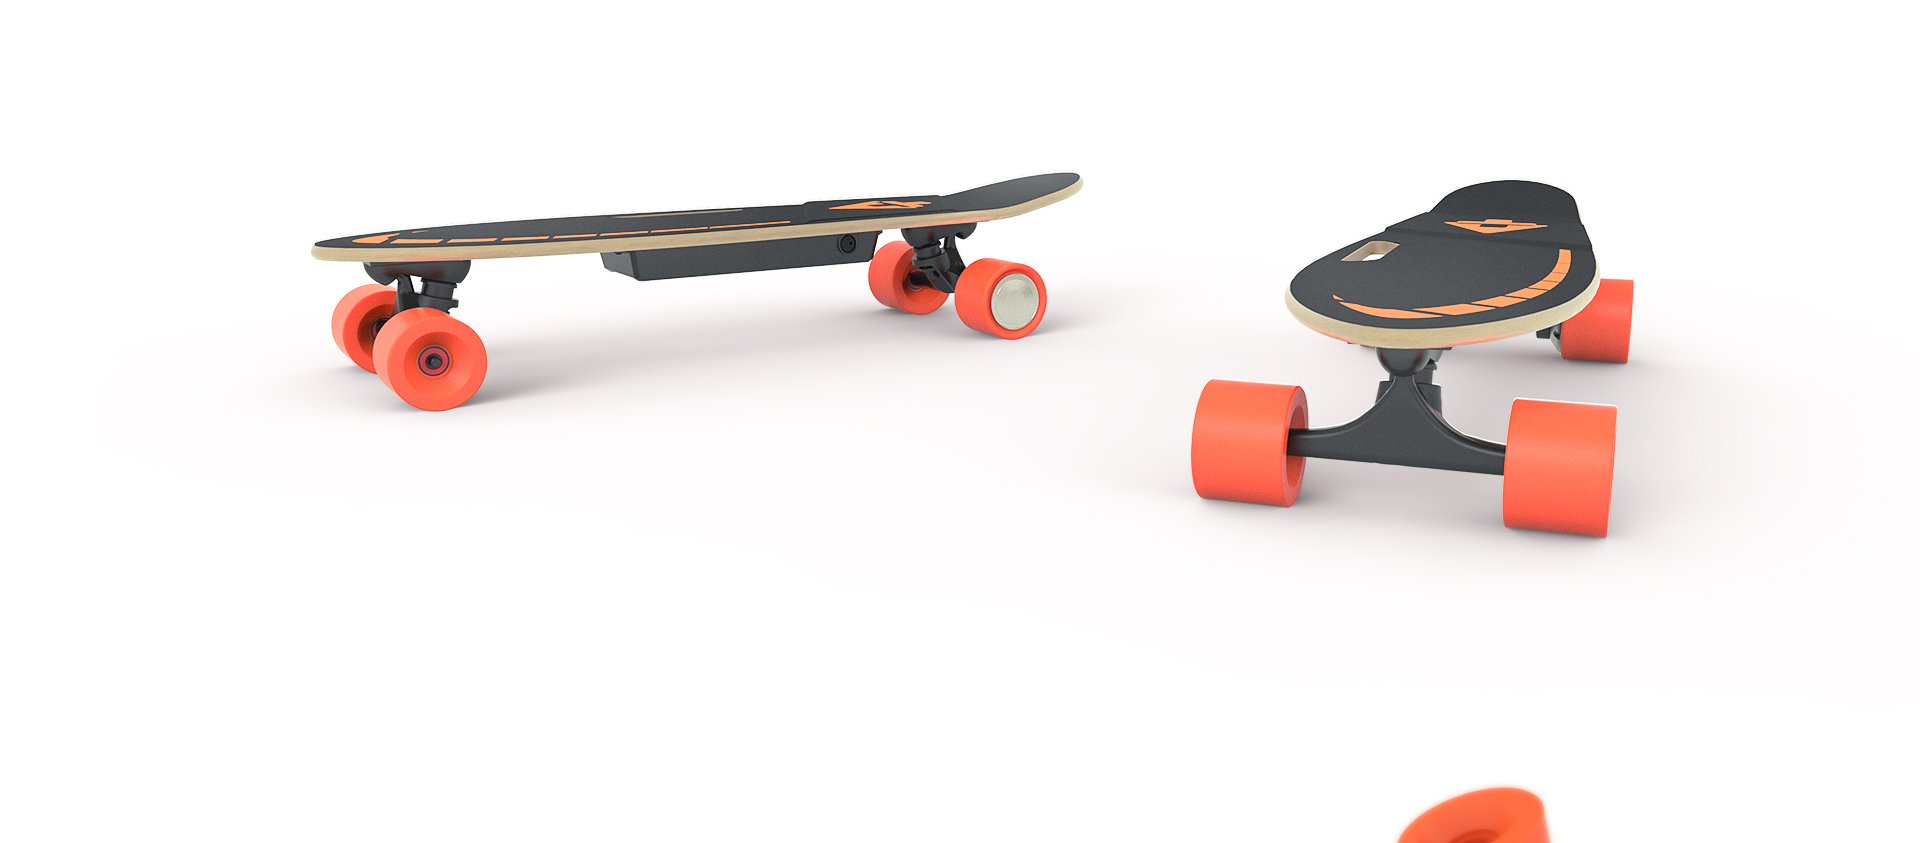 3.6Kg lightweight skateboard portable with handle design. It is the first  electric ... 2a695dad879